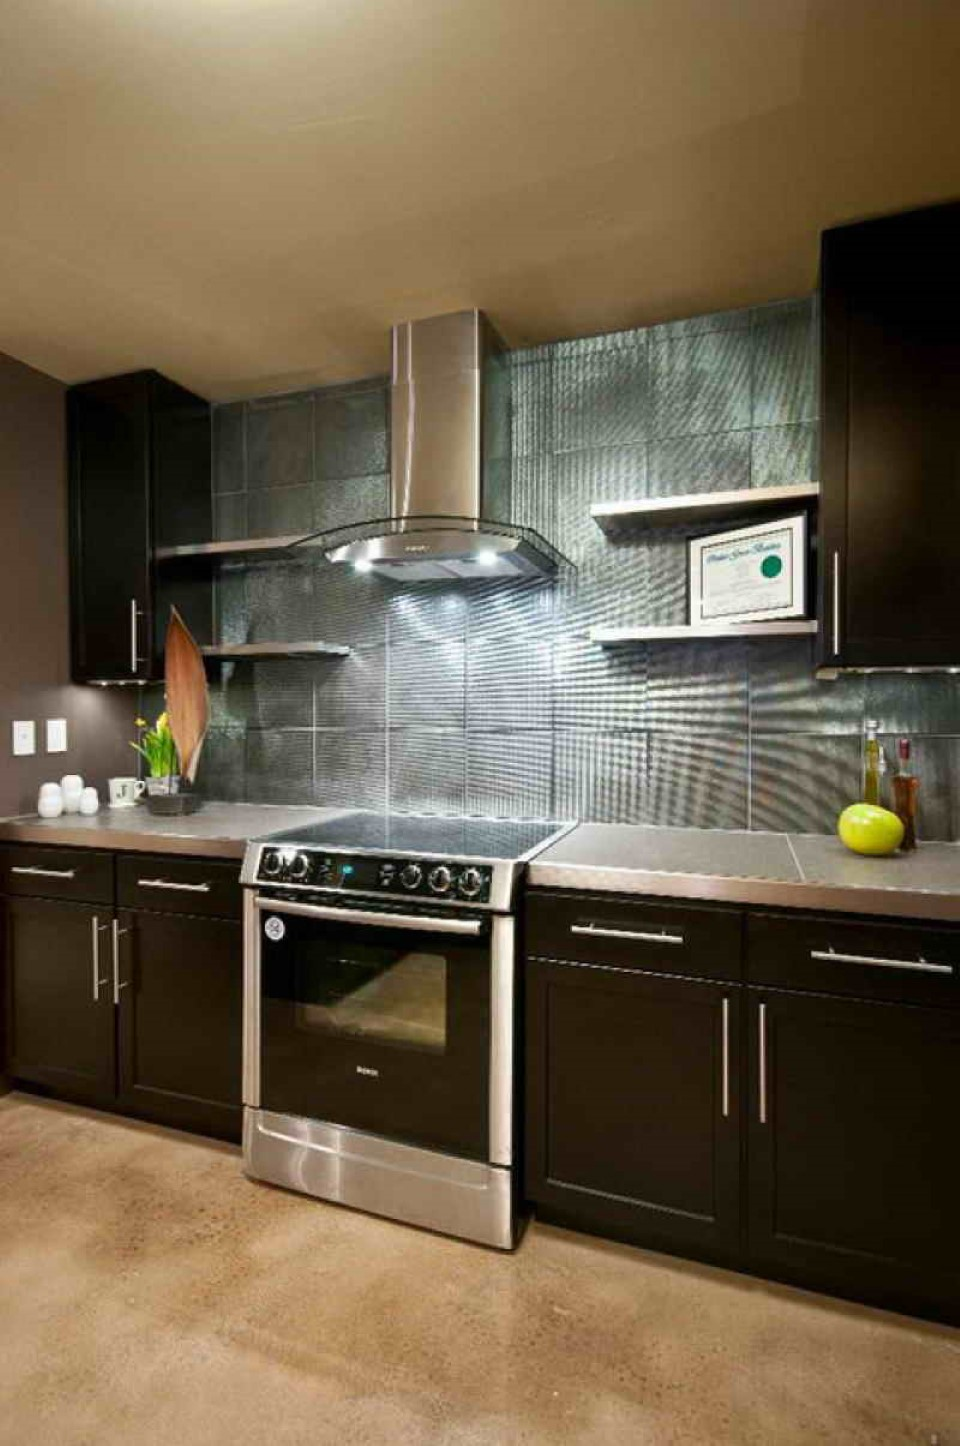 2015 Kitchen Ideas with Fascinating Wall Treatment | homyhouse on Images Of Modern Kitchens  id=40981